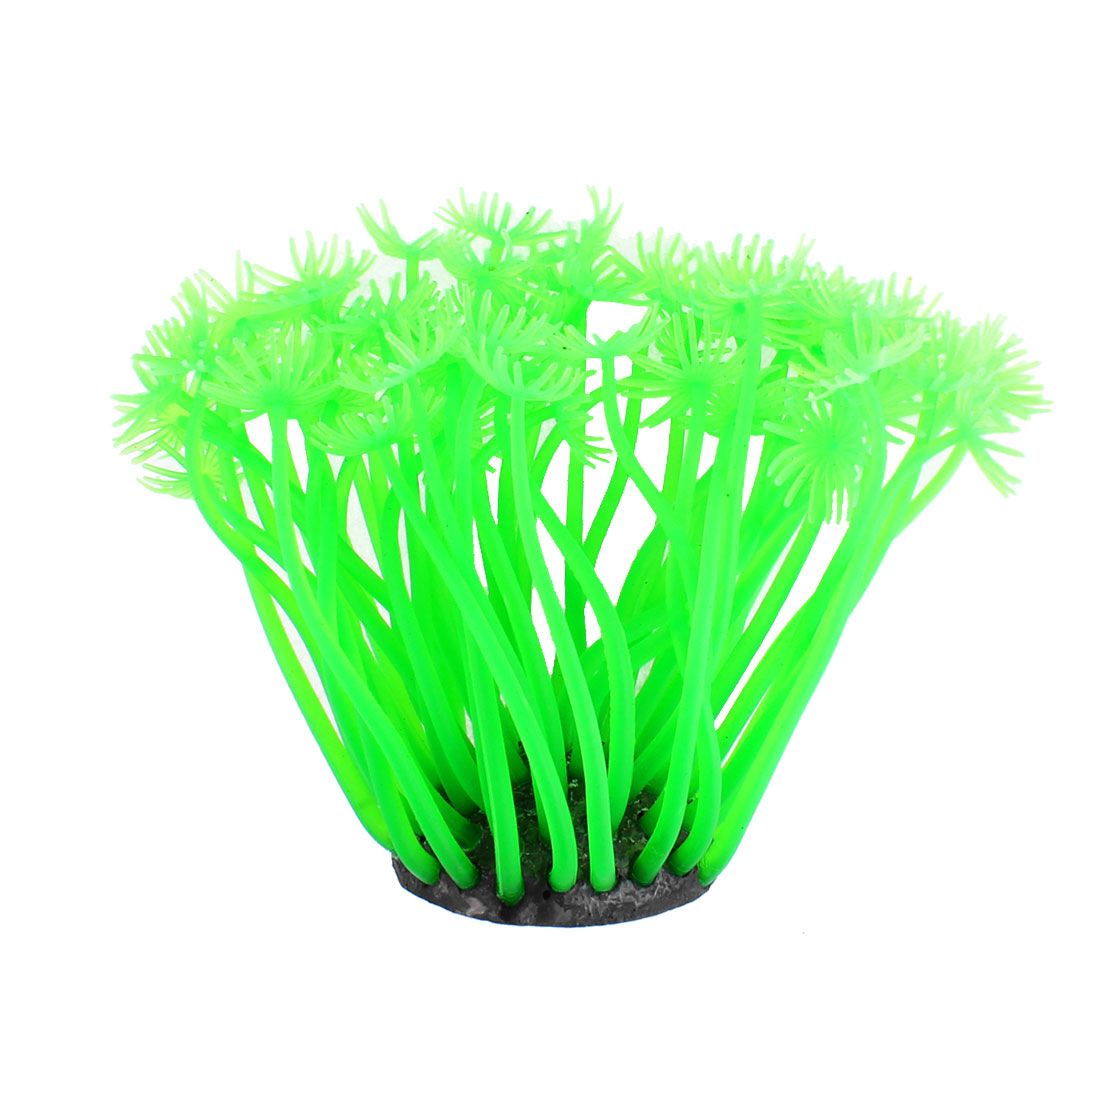 Aquarium Tank Artificial Soft Silicone Grass Decor Water Plant Green